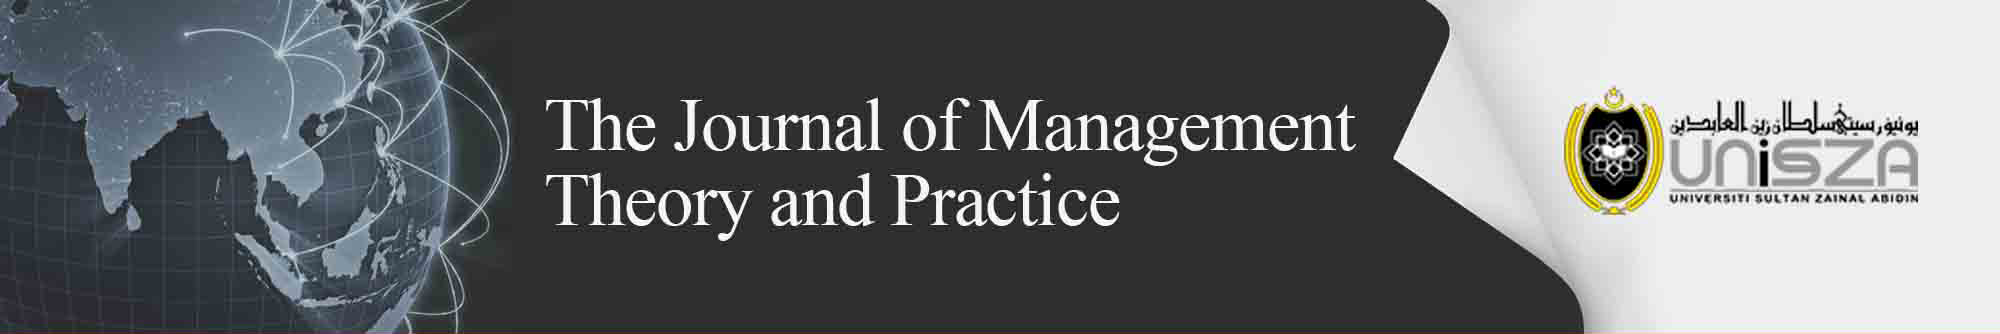 The Journal of Management Theory and Practice (JMTP)